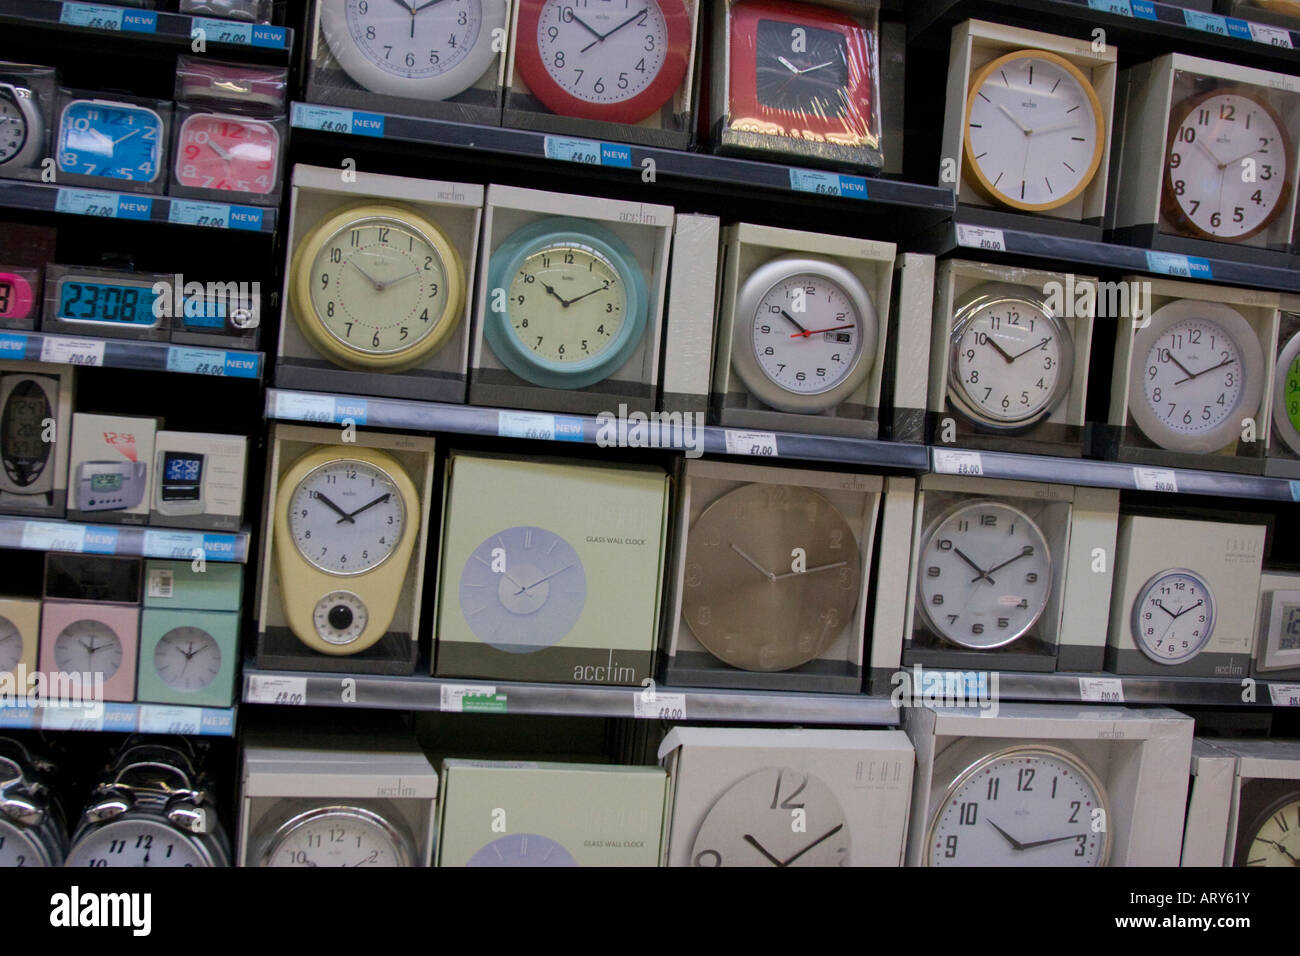 Wall Clocks Sale Stock Photos Wall Clocks Sale Stock Images Alamy